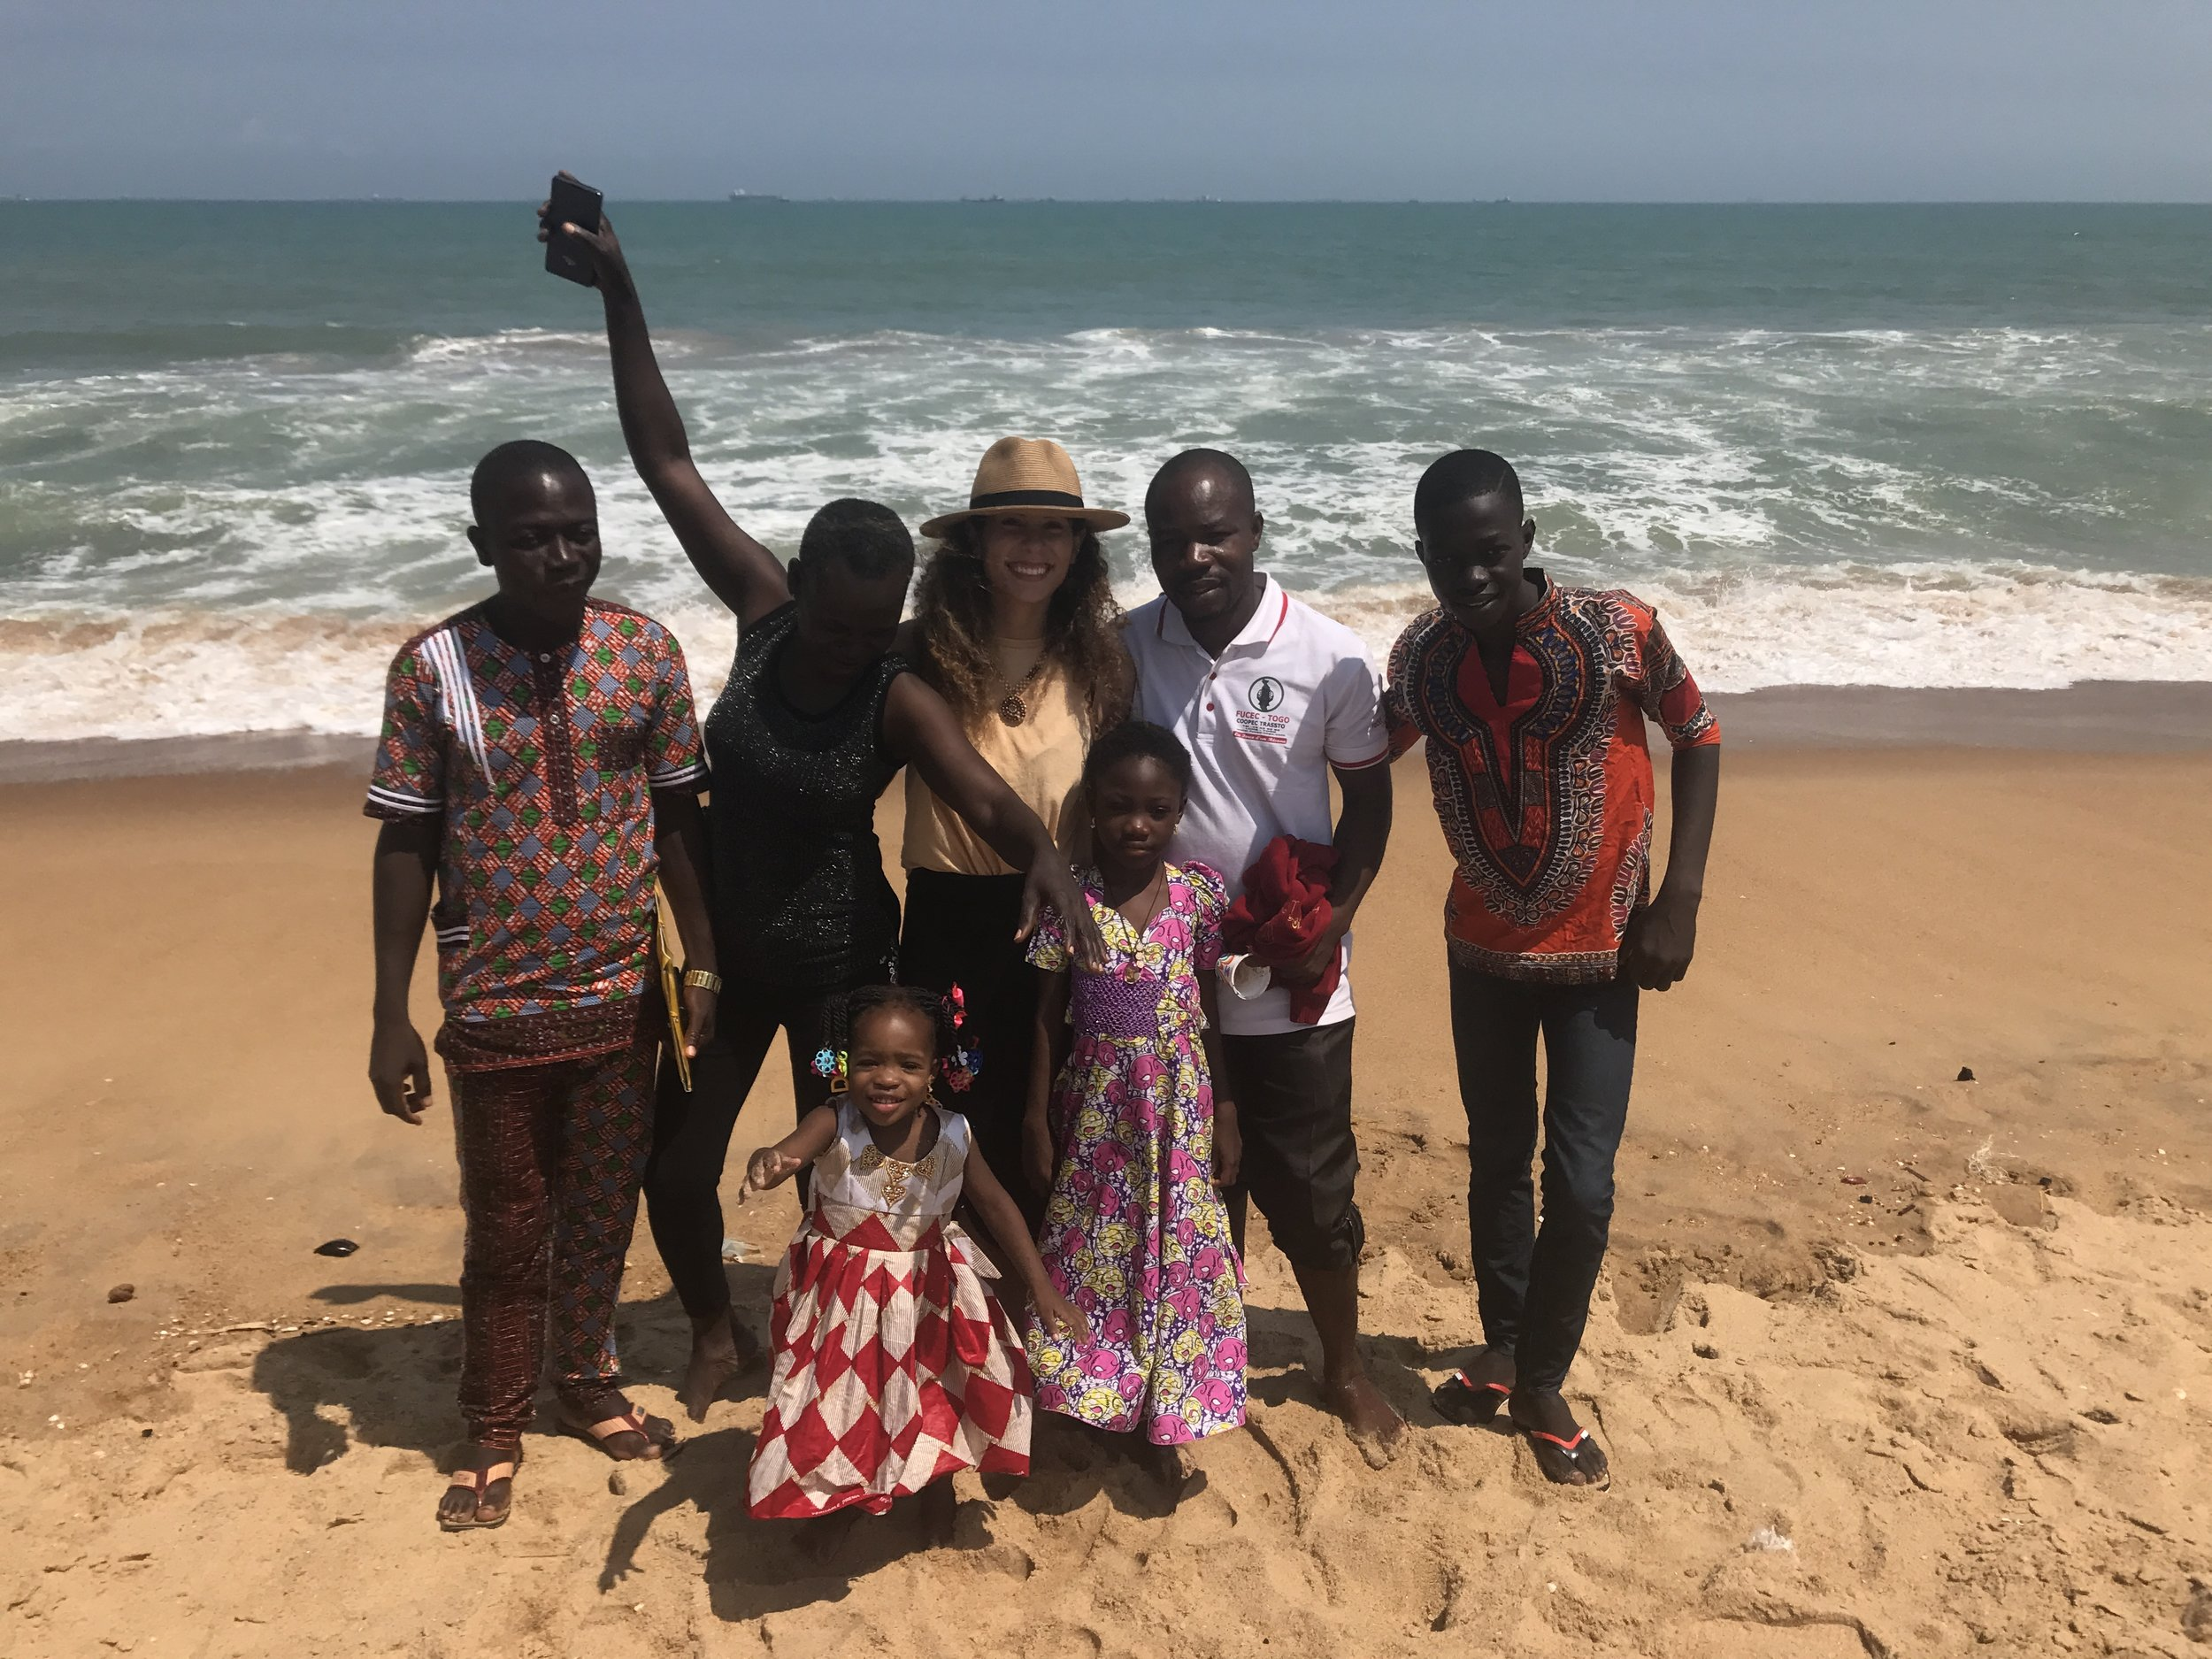 Before returning home we stopped at the beach in Lome